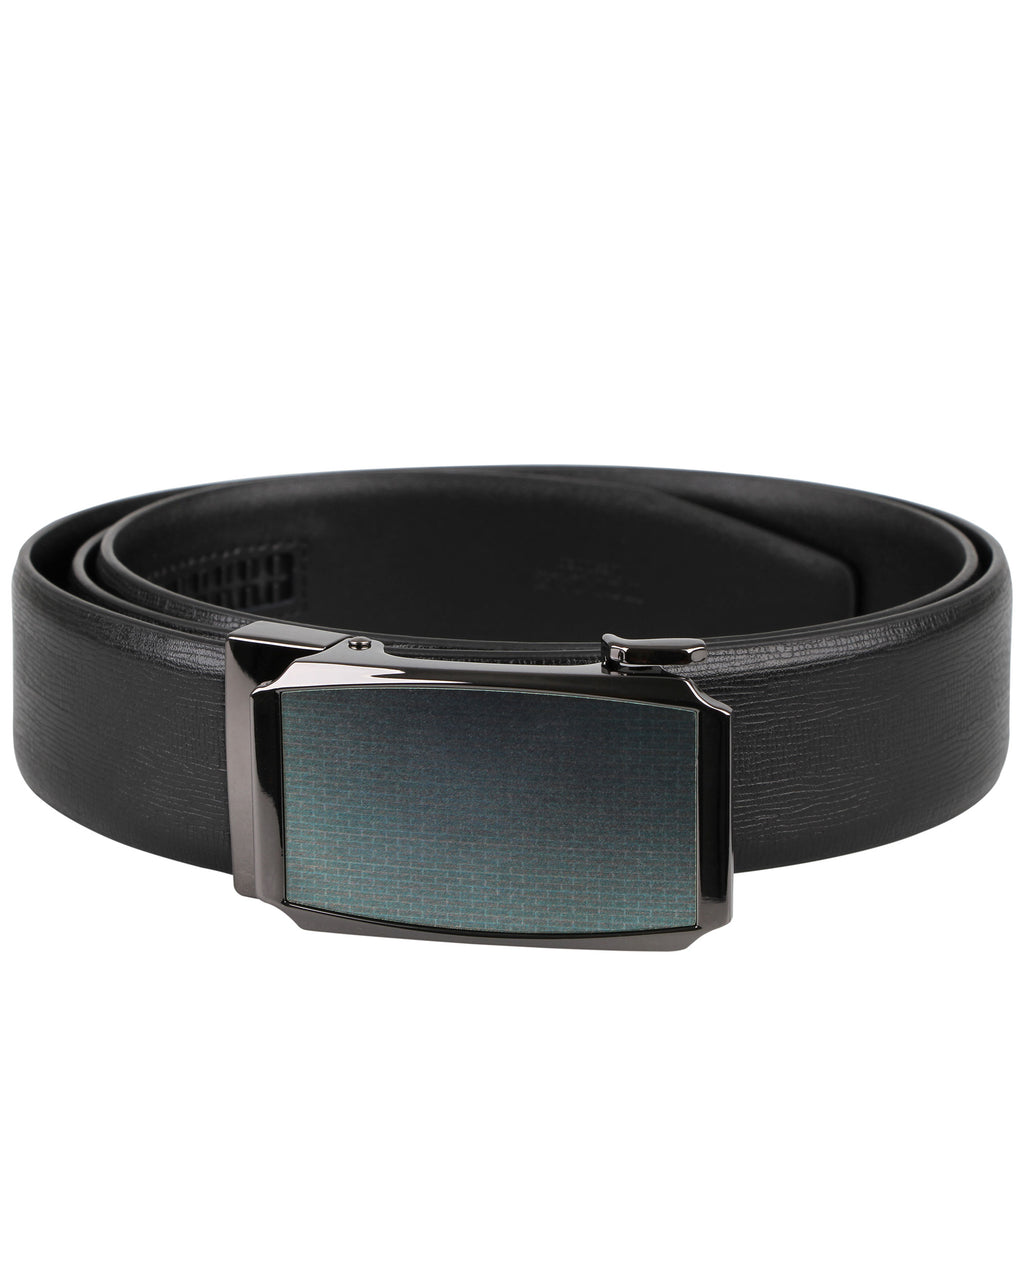 Tomaz Automatic Belt NT157 (Black)